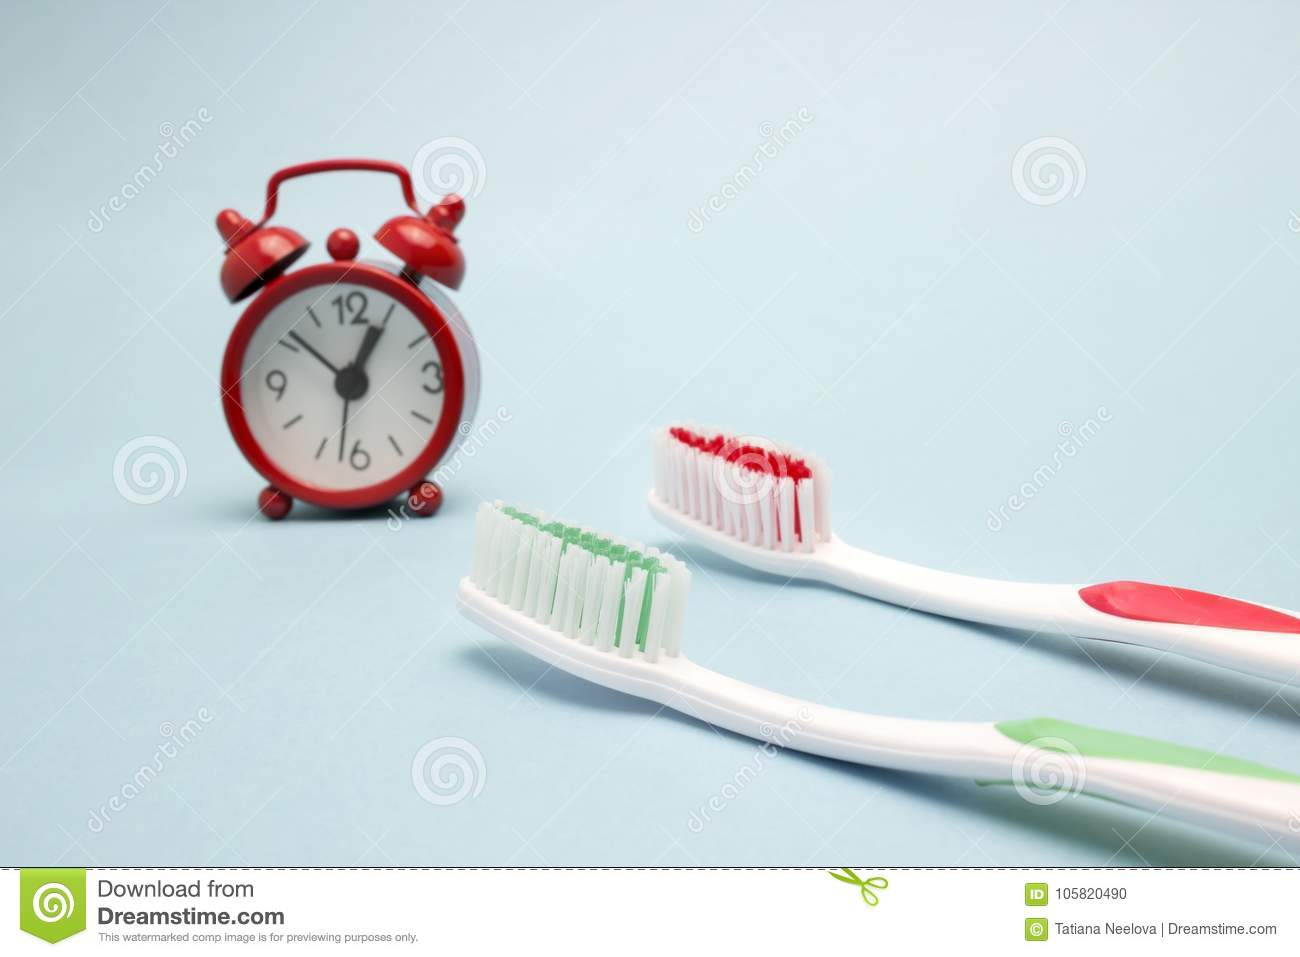 A photo of the red alarm clock and two toothbrushes. Time to clean the teeth. Dental care, personal hygiene concept photo. An impo